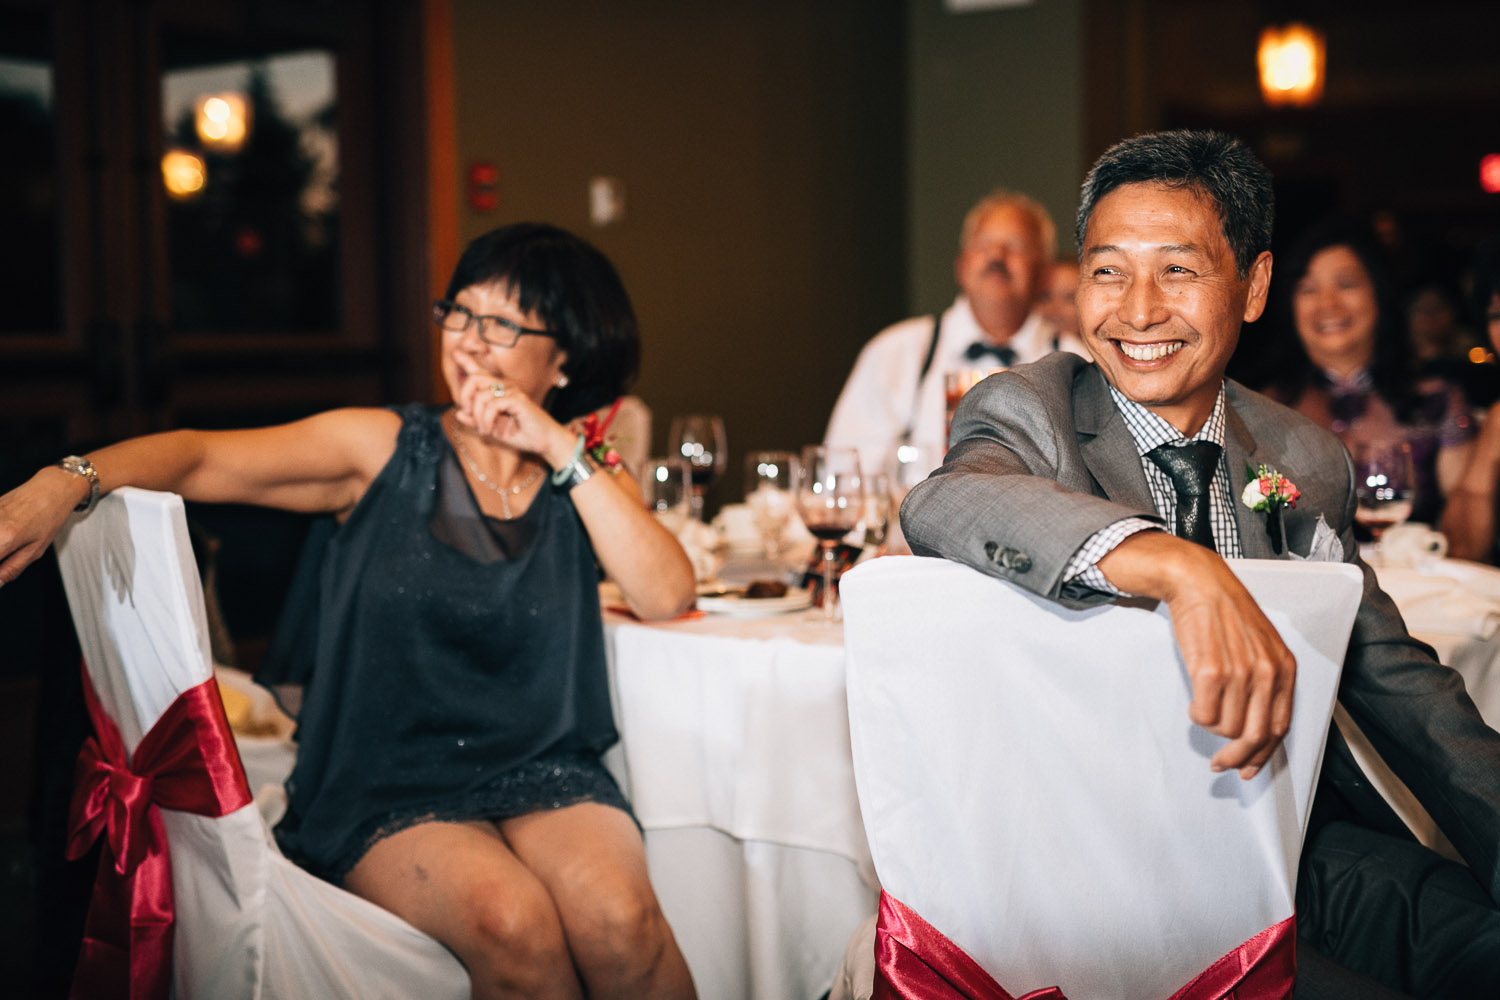 marine drive golf course wedding photographer vancouver noyo creative